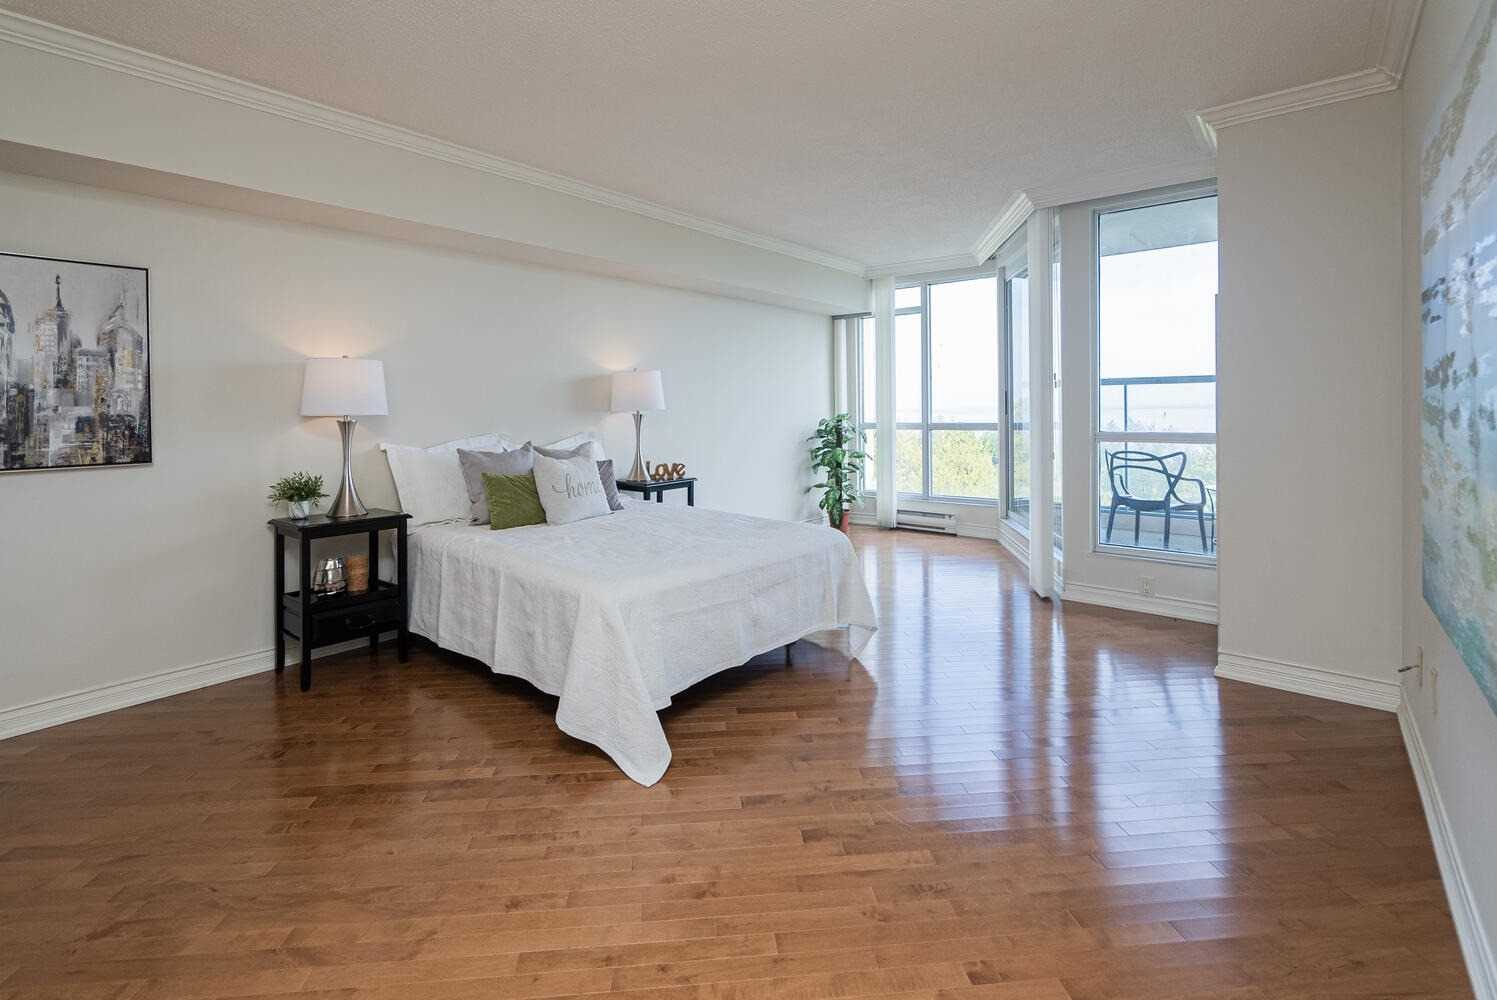 Image 9 of 38 showing inside of 2 Bedroom Condo Apt Apartment for Sale at 70 Cumberland Lane Unit# 503, Ajax L1S7K4